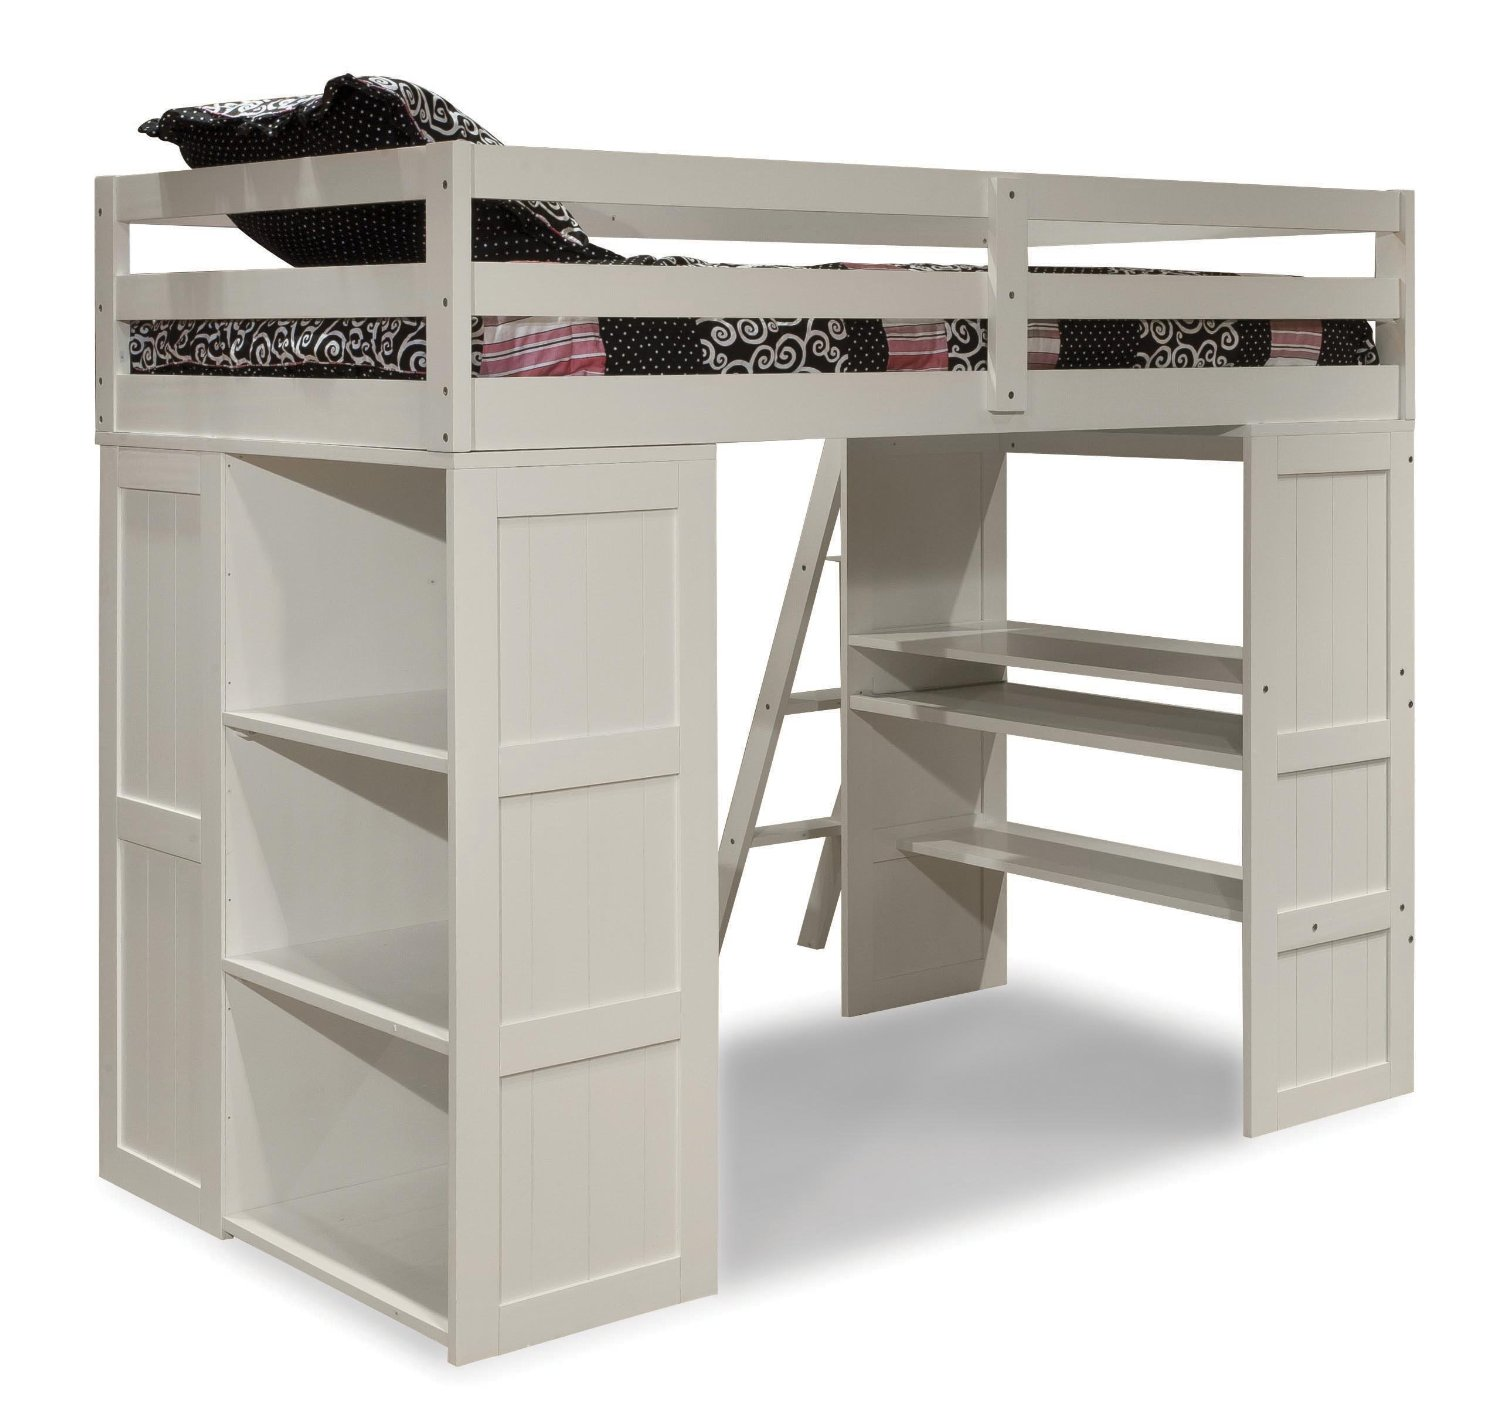 intended living bottom bed loft beds twin with bunk full l boardwalk room size for house shape